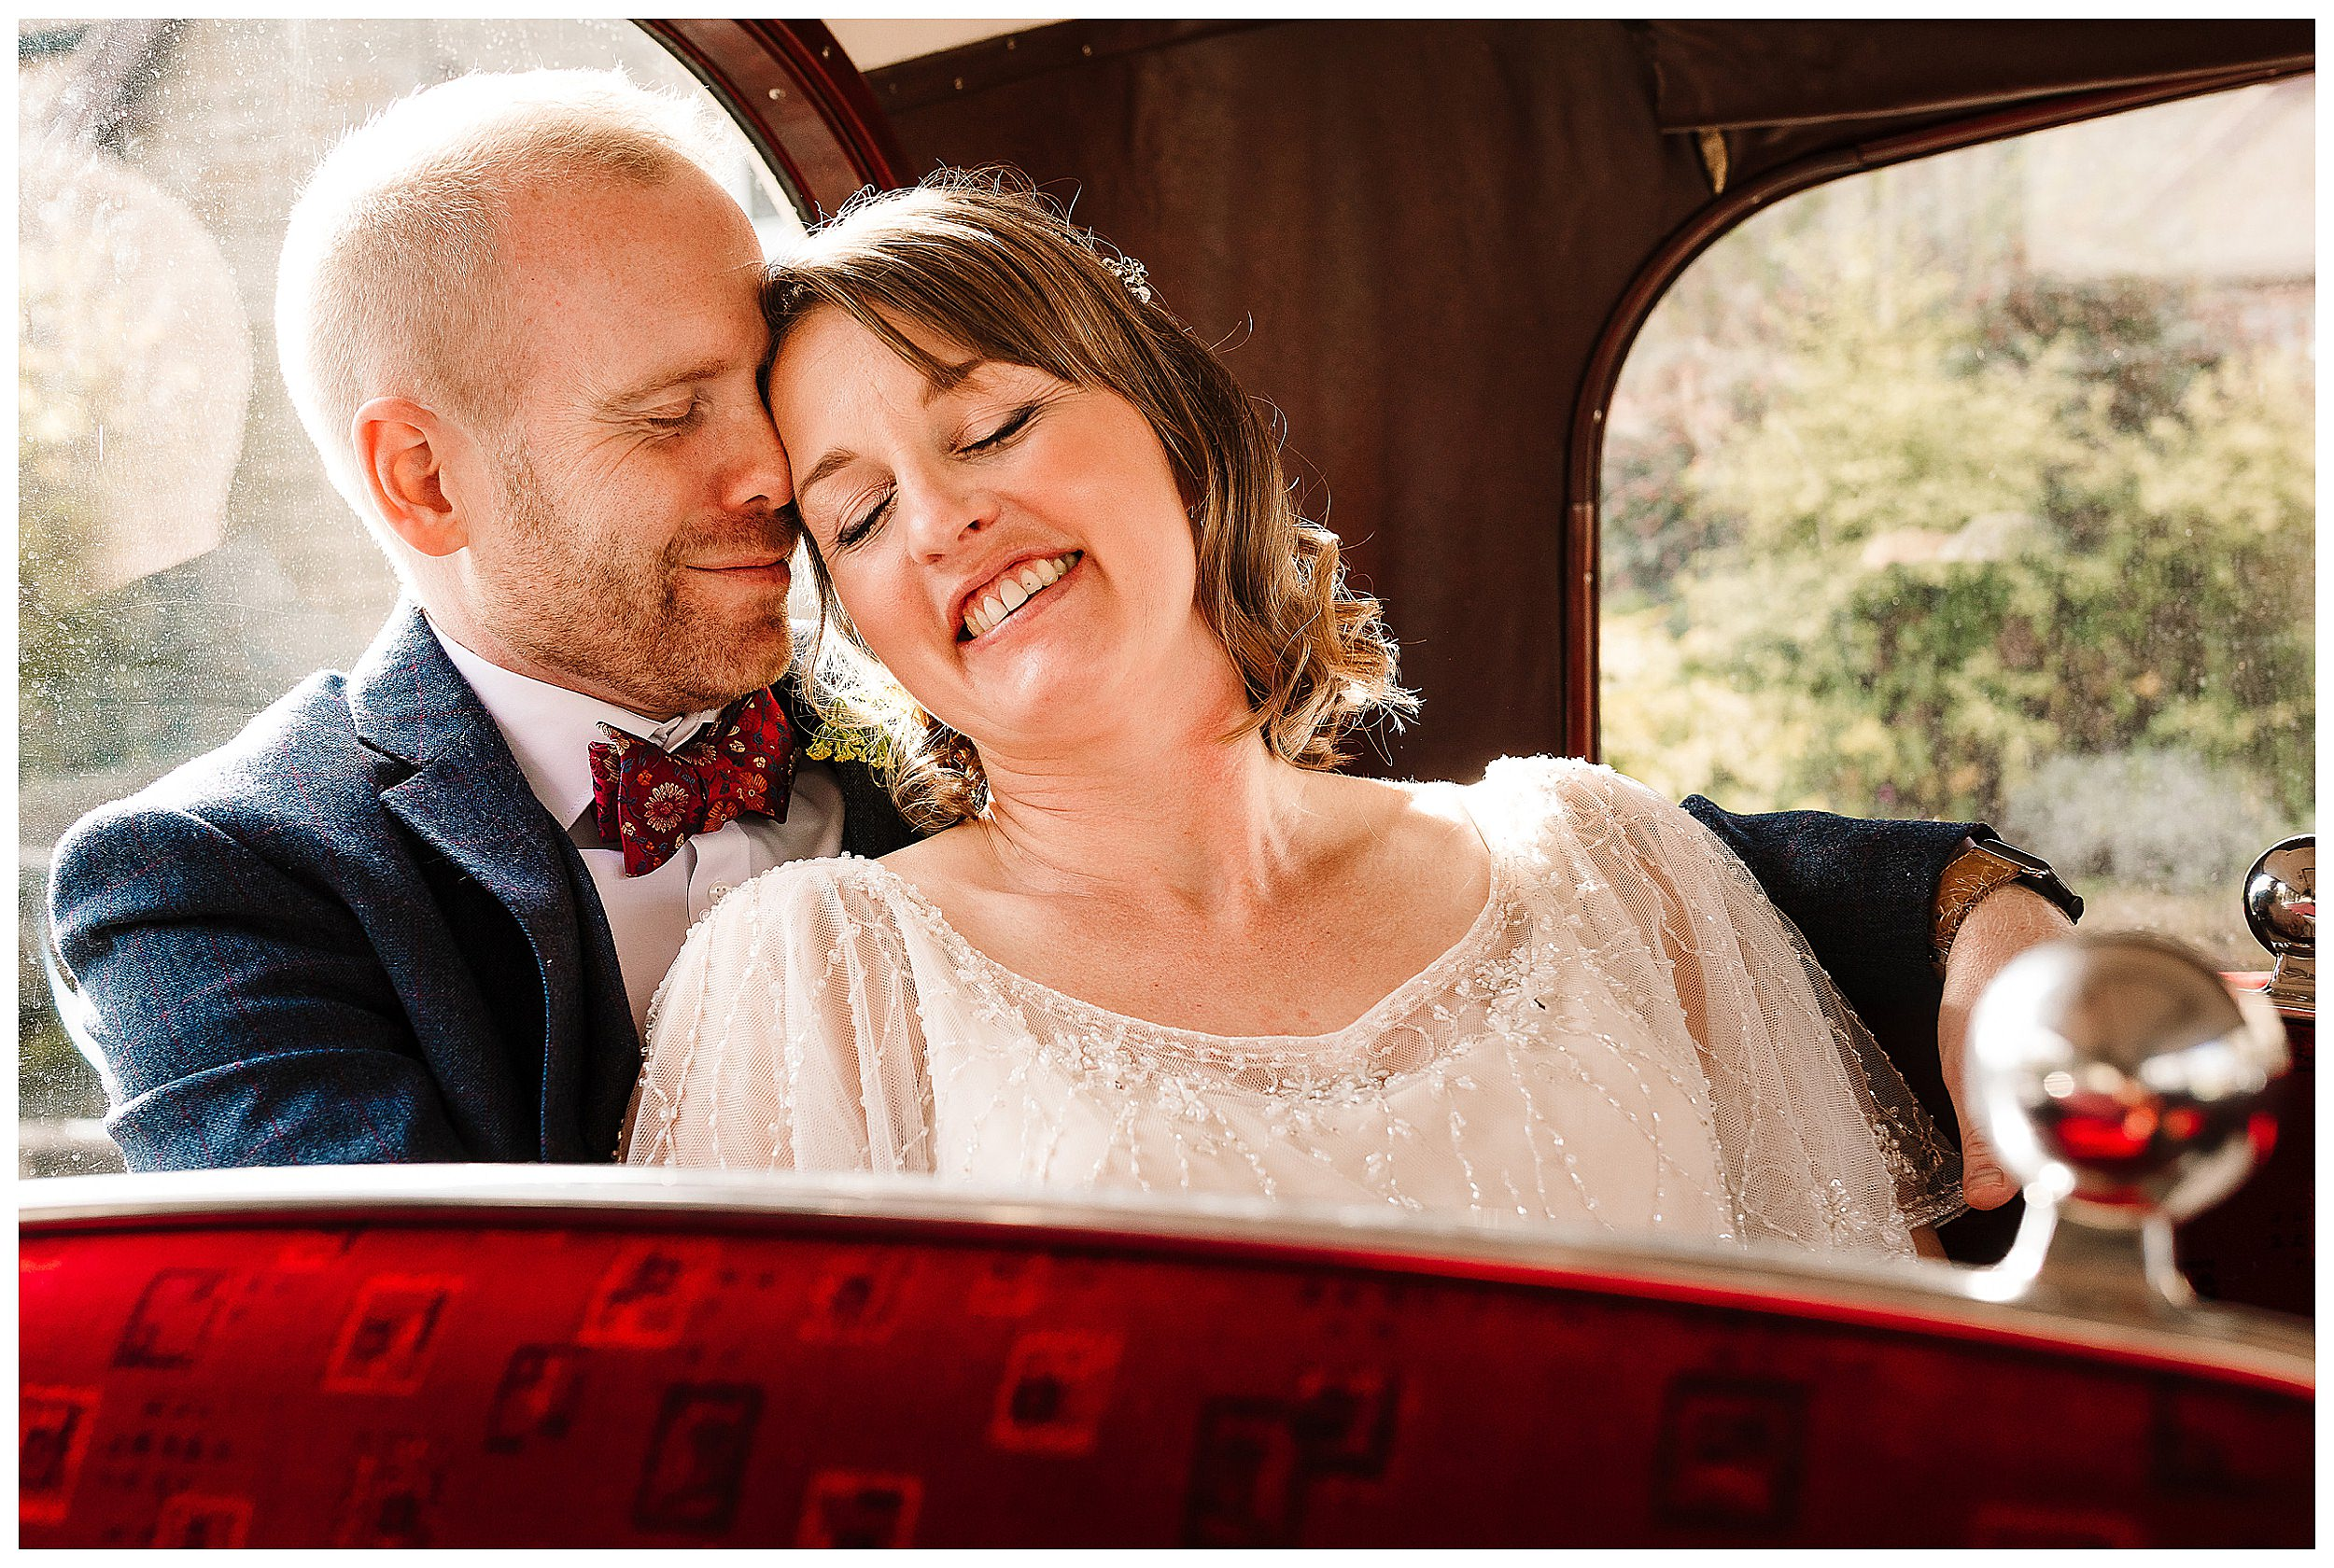 A bride and groom with their eyes closed smiling and snuggling on a vintage bus